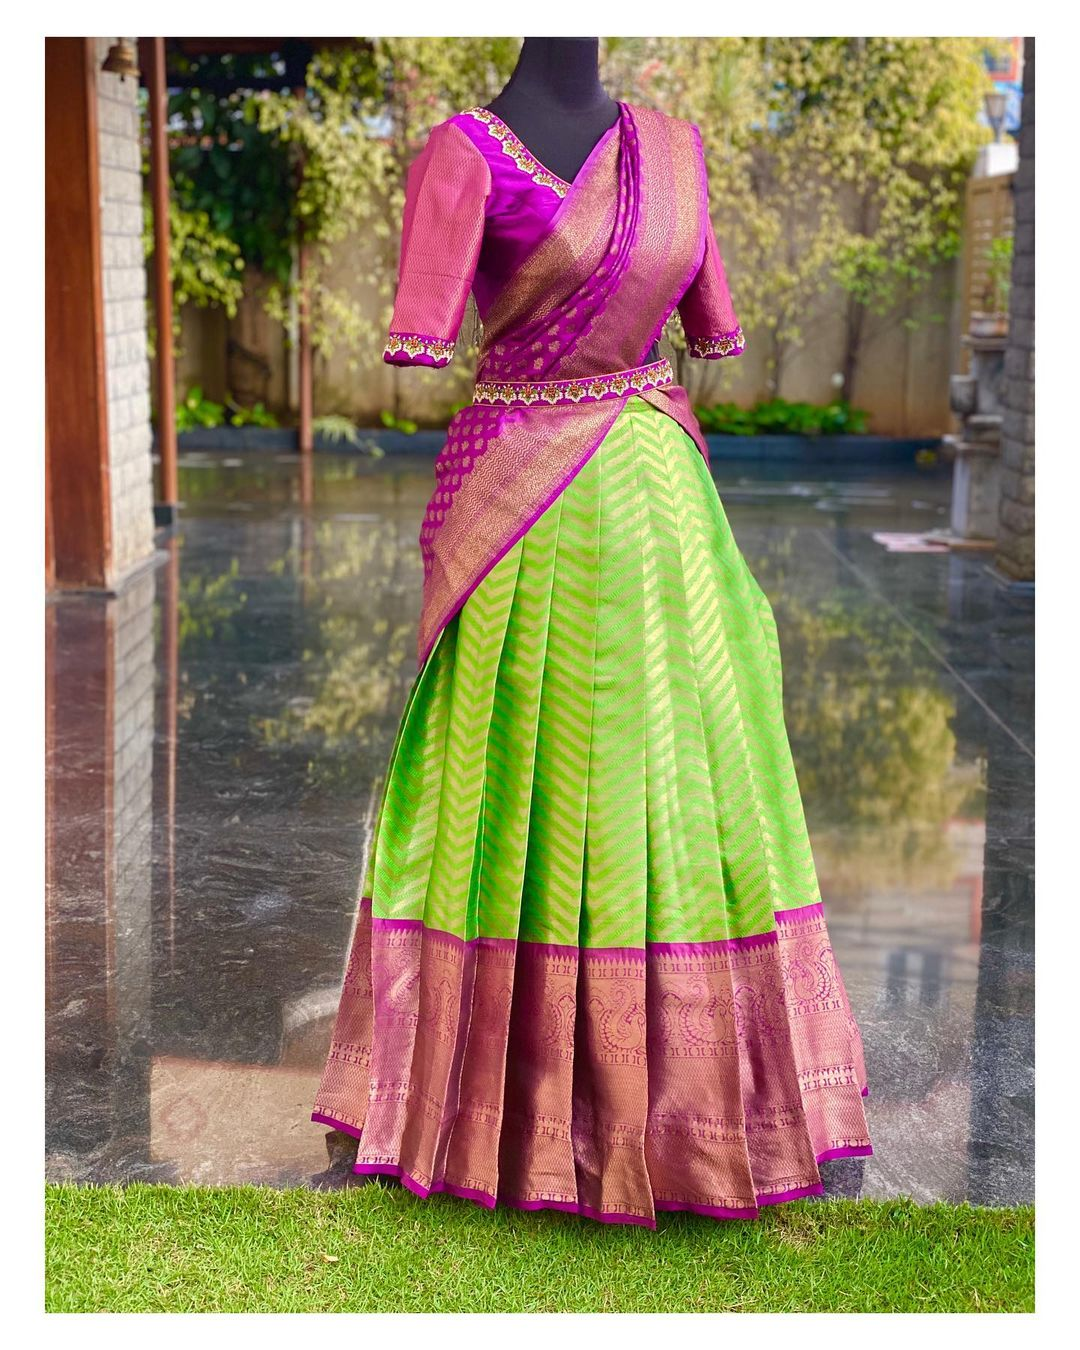 Simple yet trendy half saree designs for small intimate ceremonies  Stunning parrot green and purple color combination pattu halfsaree. call/whatsapp  on 8951239449 2021-01-24